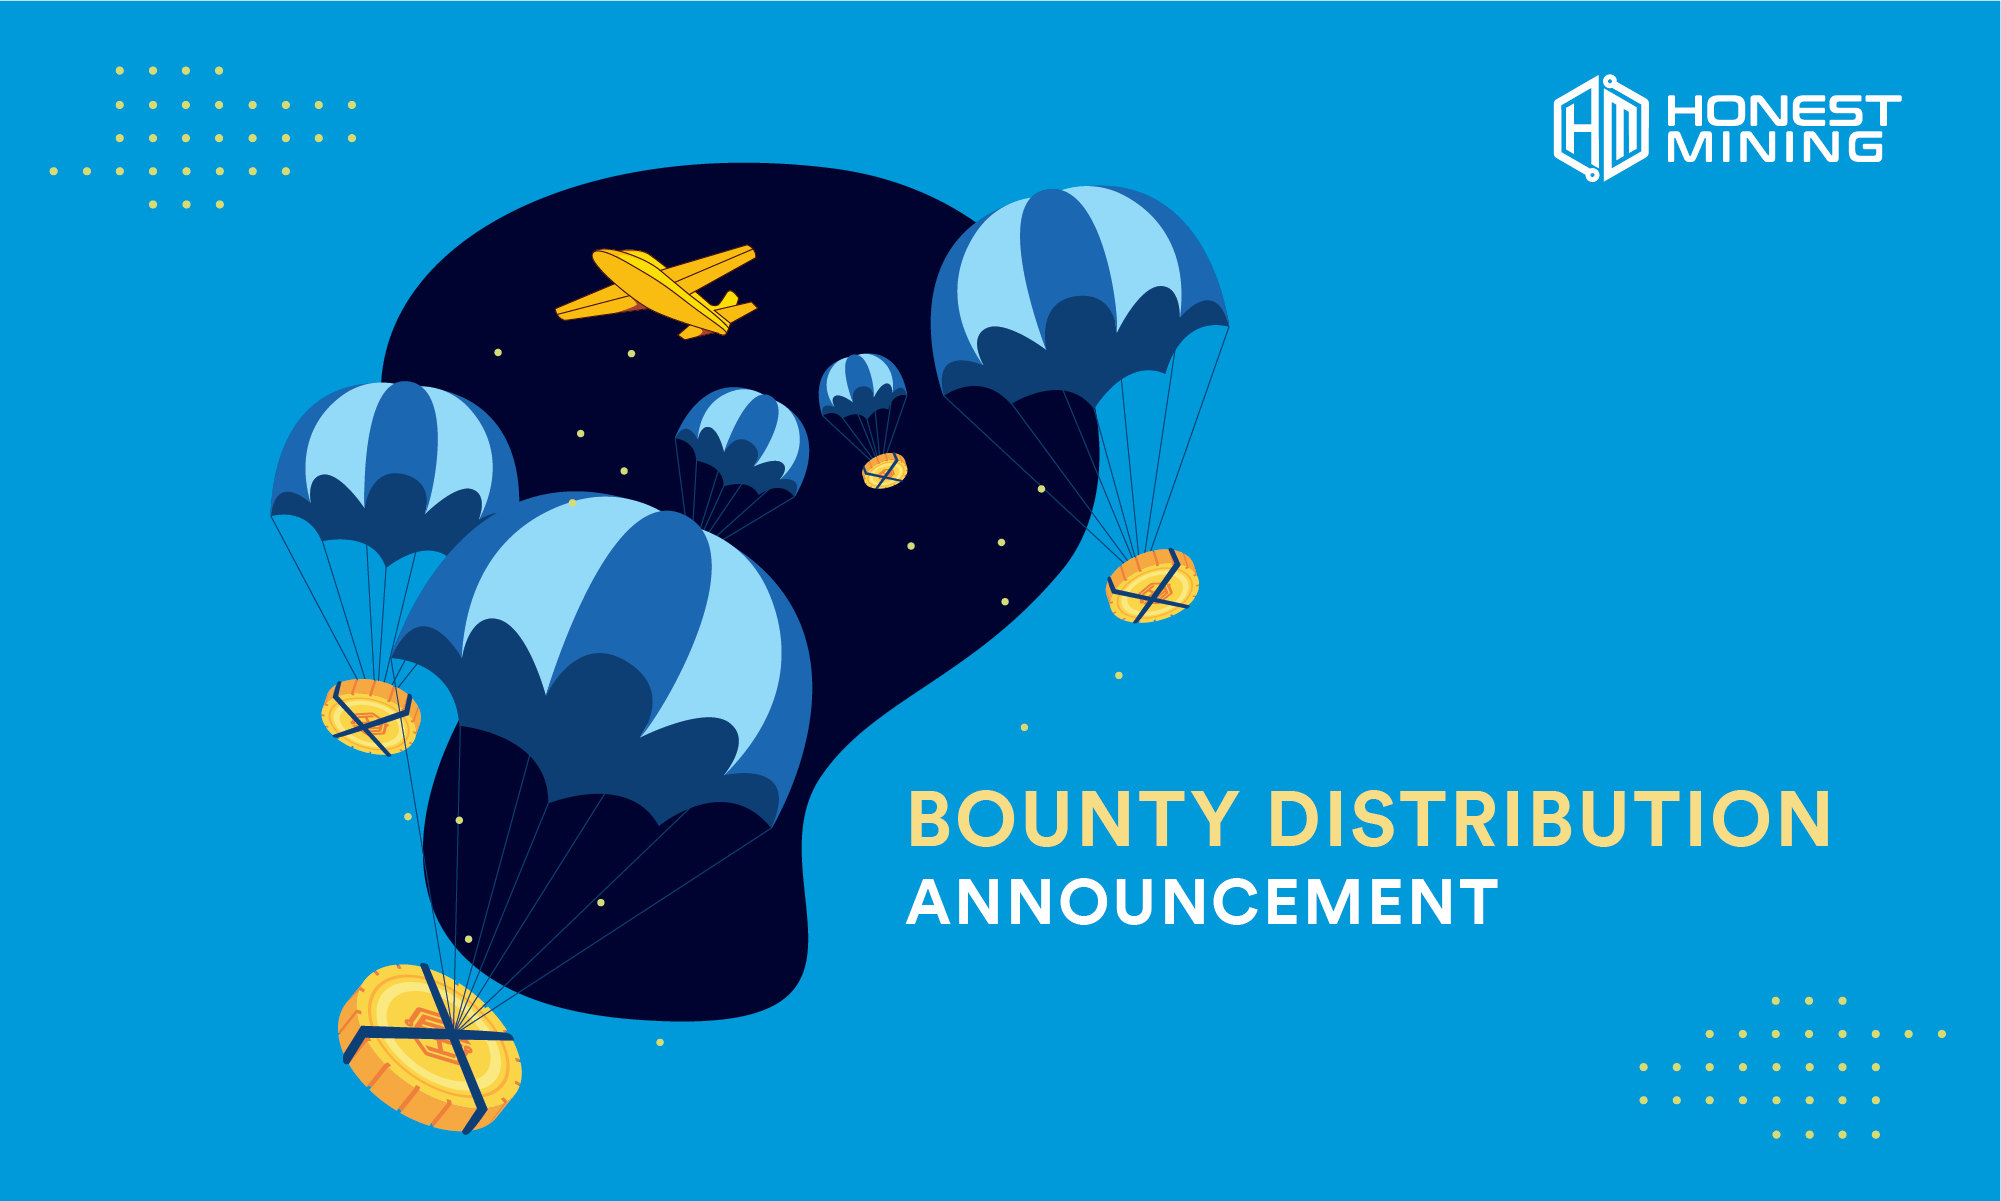 Honest_Mining_Bounty_Announcement